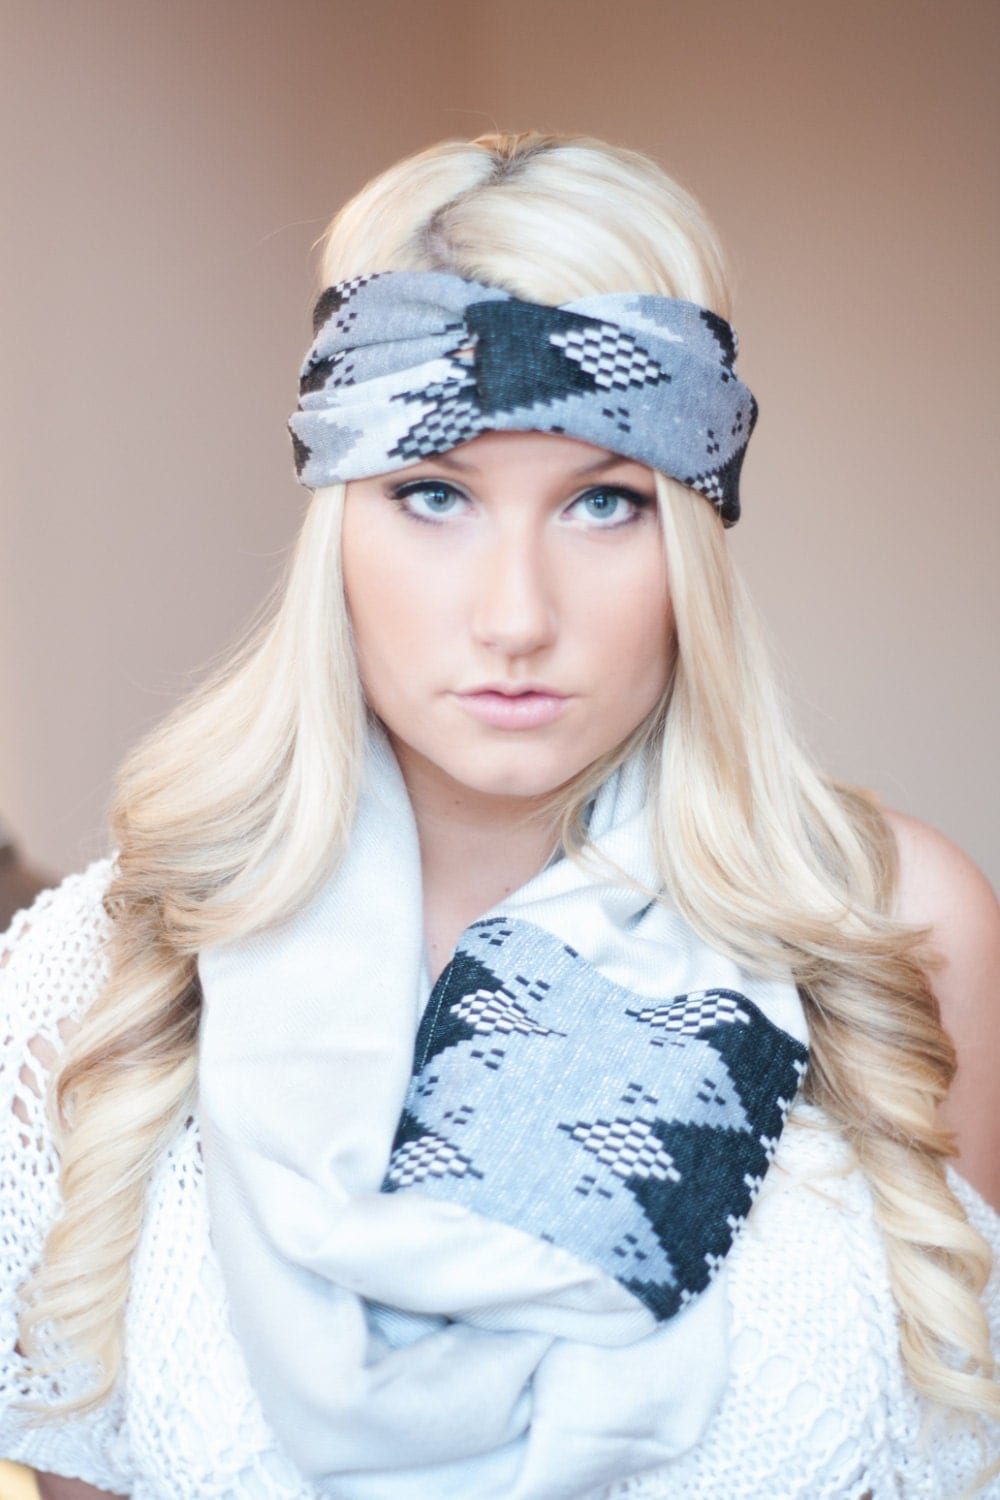 Shop for hair scarves and headbands online at Target. Free shipping on purchases over $35 and save 5% every day with your Target REDcard.